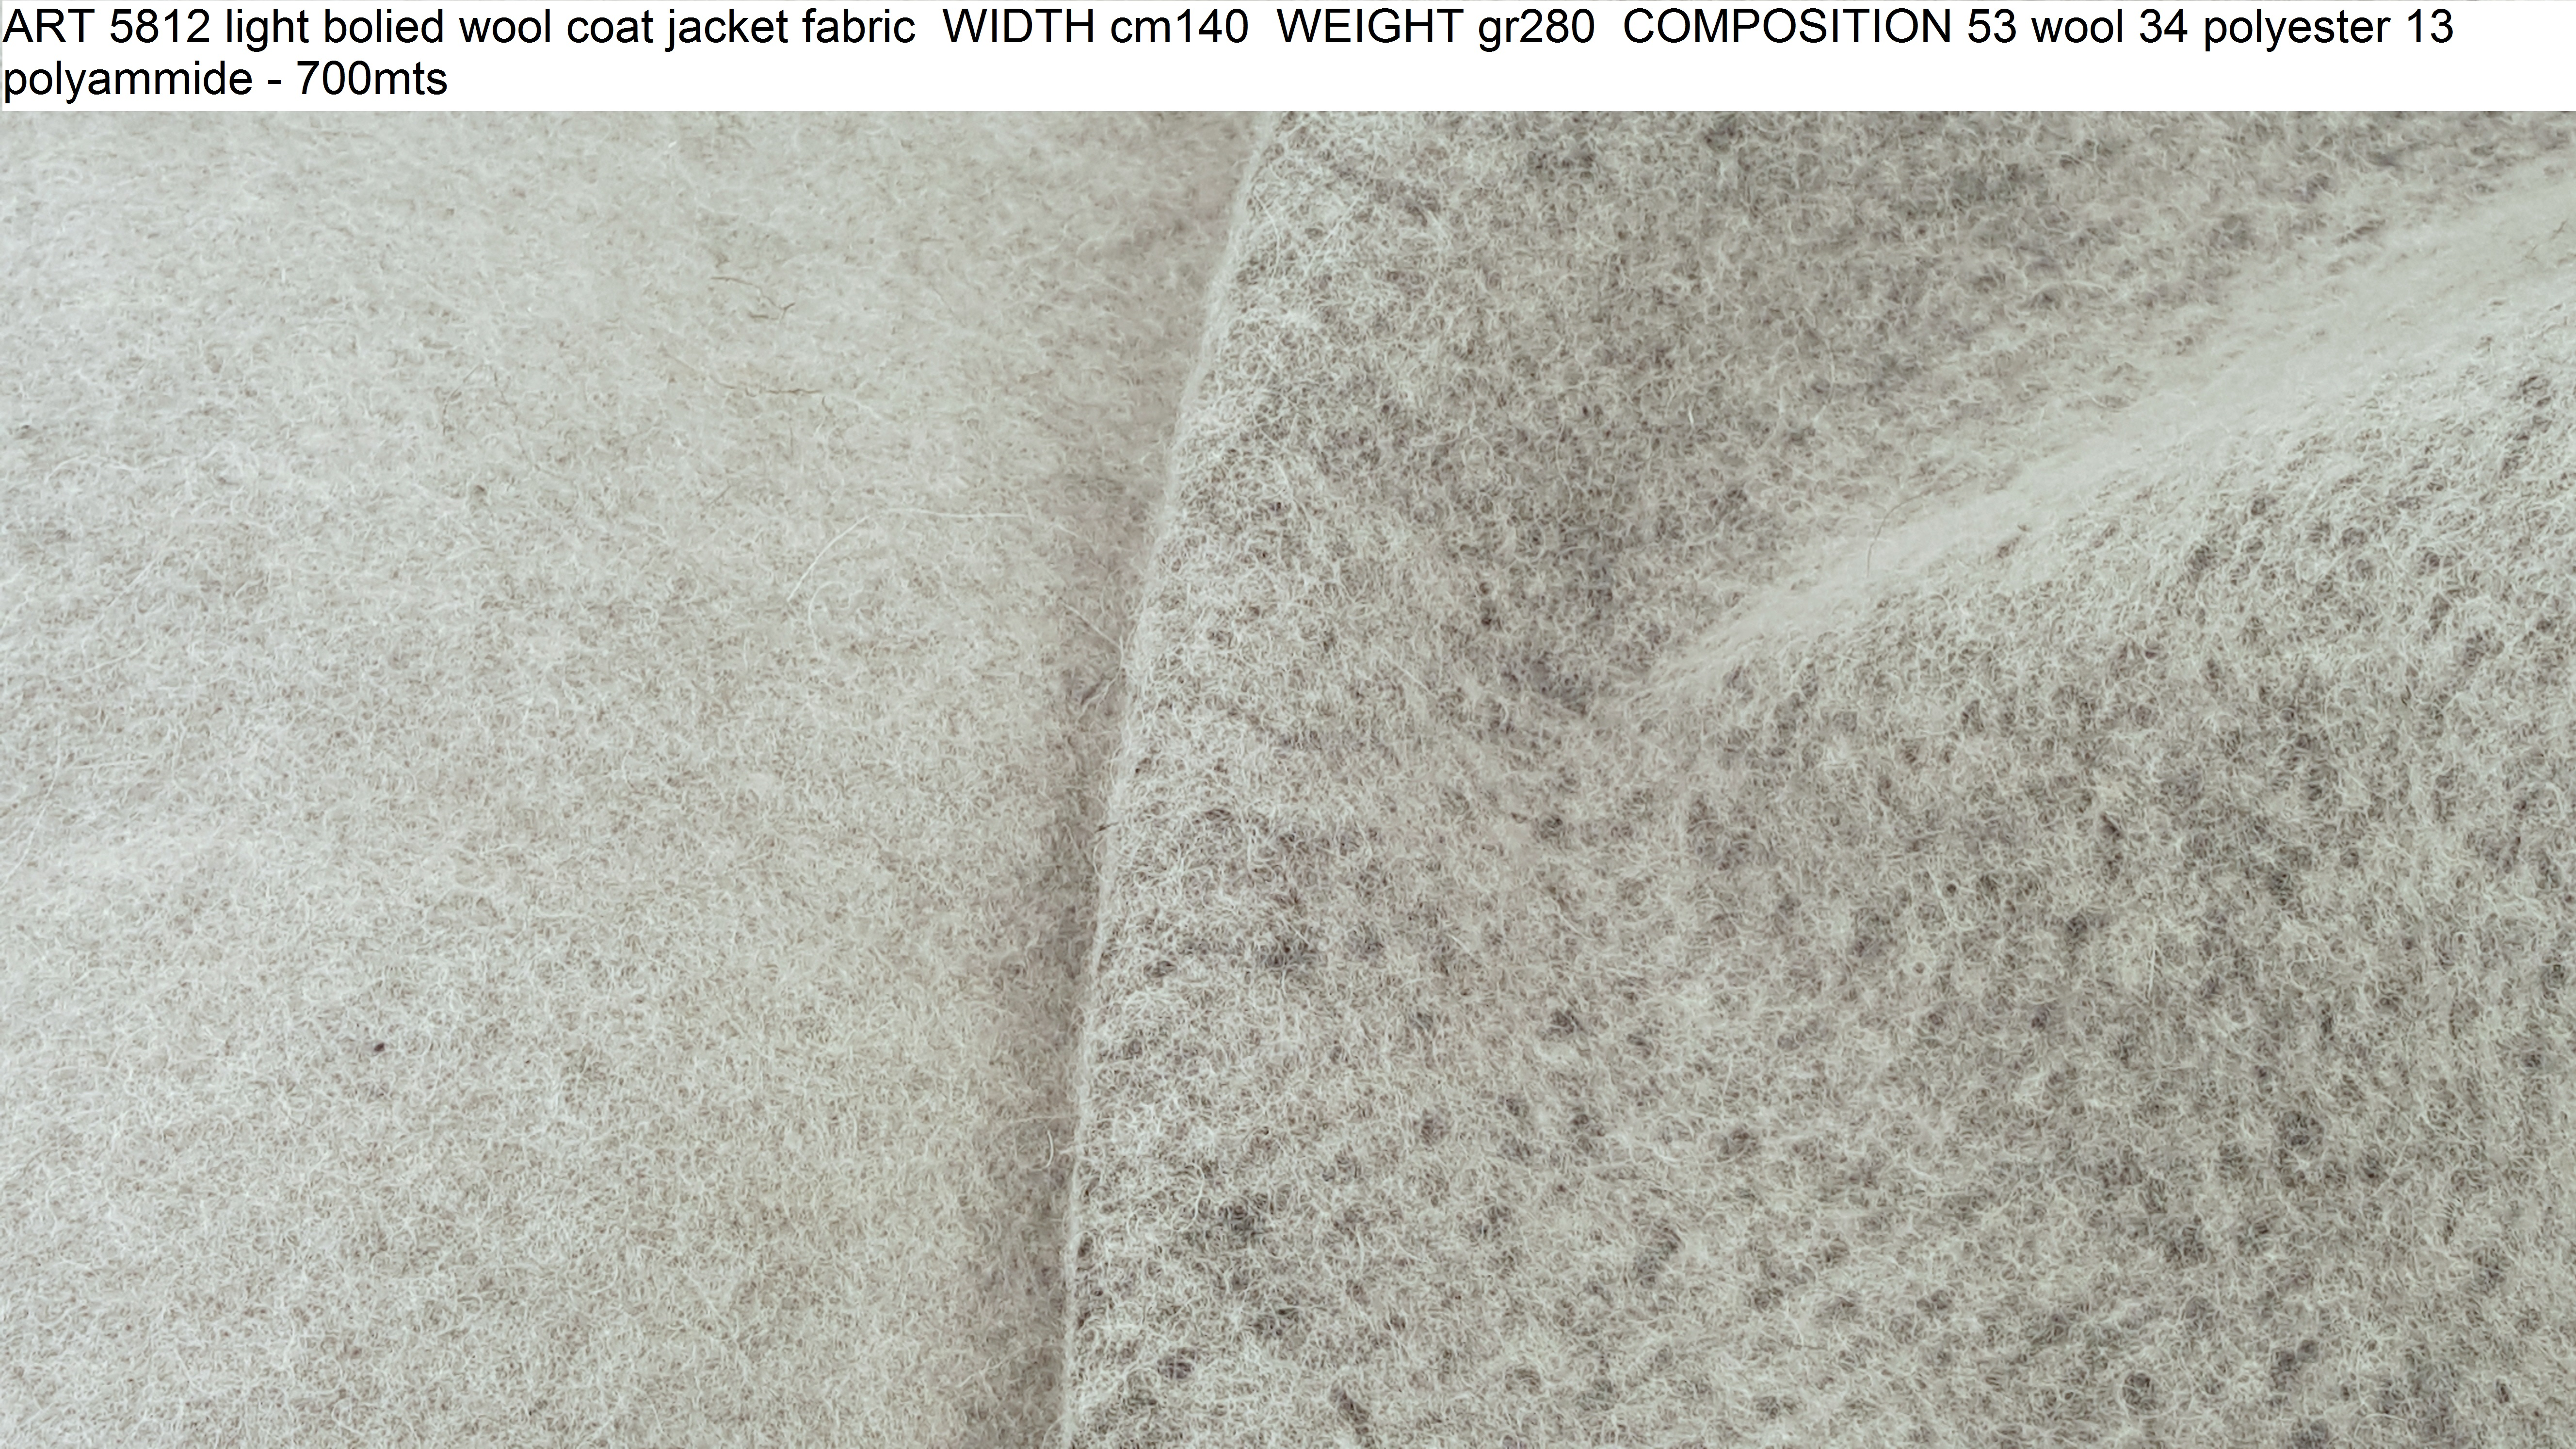 ART 5812 light bolied wool coat jacket fabric WIDTH cm140 WEIGHT gr280 COMPOSITION 53 wool 34 polyester 13 polyammide - 700mts